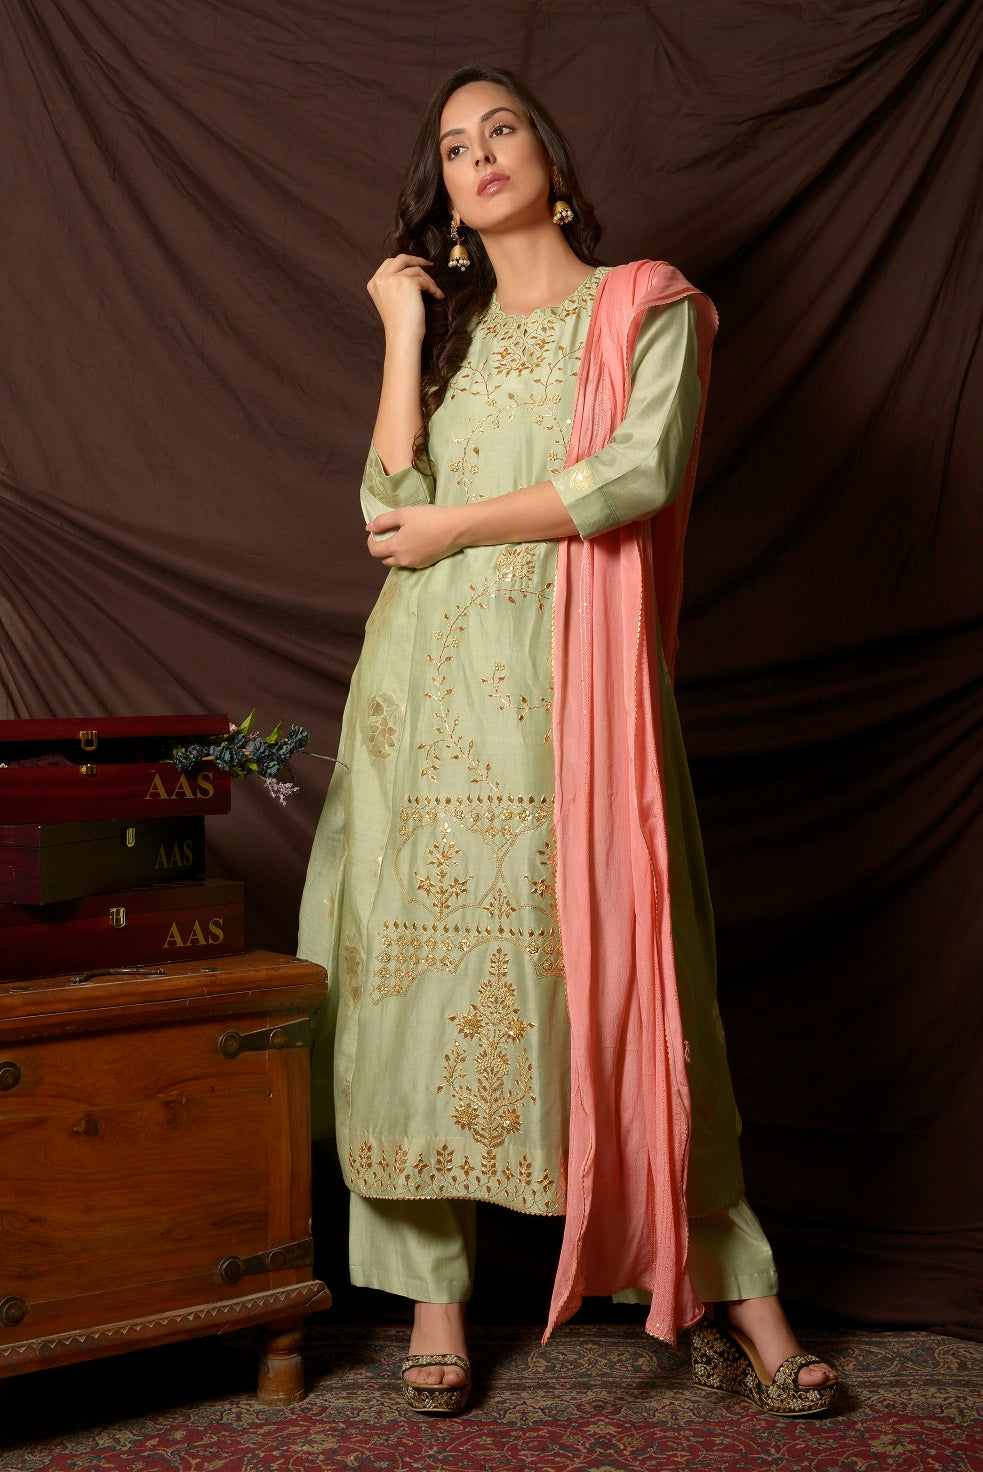 Buy gorgeous dusty green embroidered chanderi suit online in USA with pink dupatta. Shine at weddings and special occasions with beautiful Indian designer suits, gowns, lehengas from Pure Elegance Indian clothing store in USA.-full view